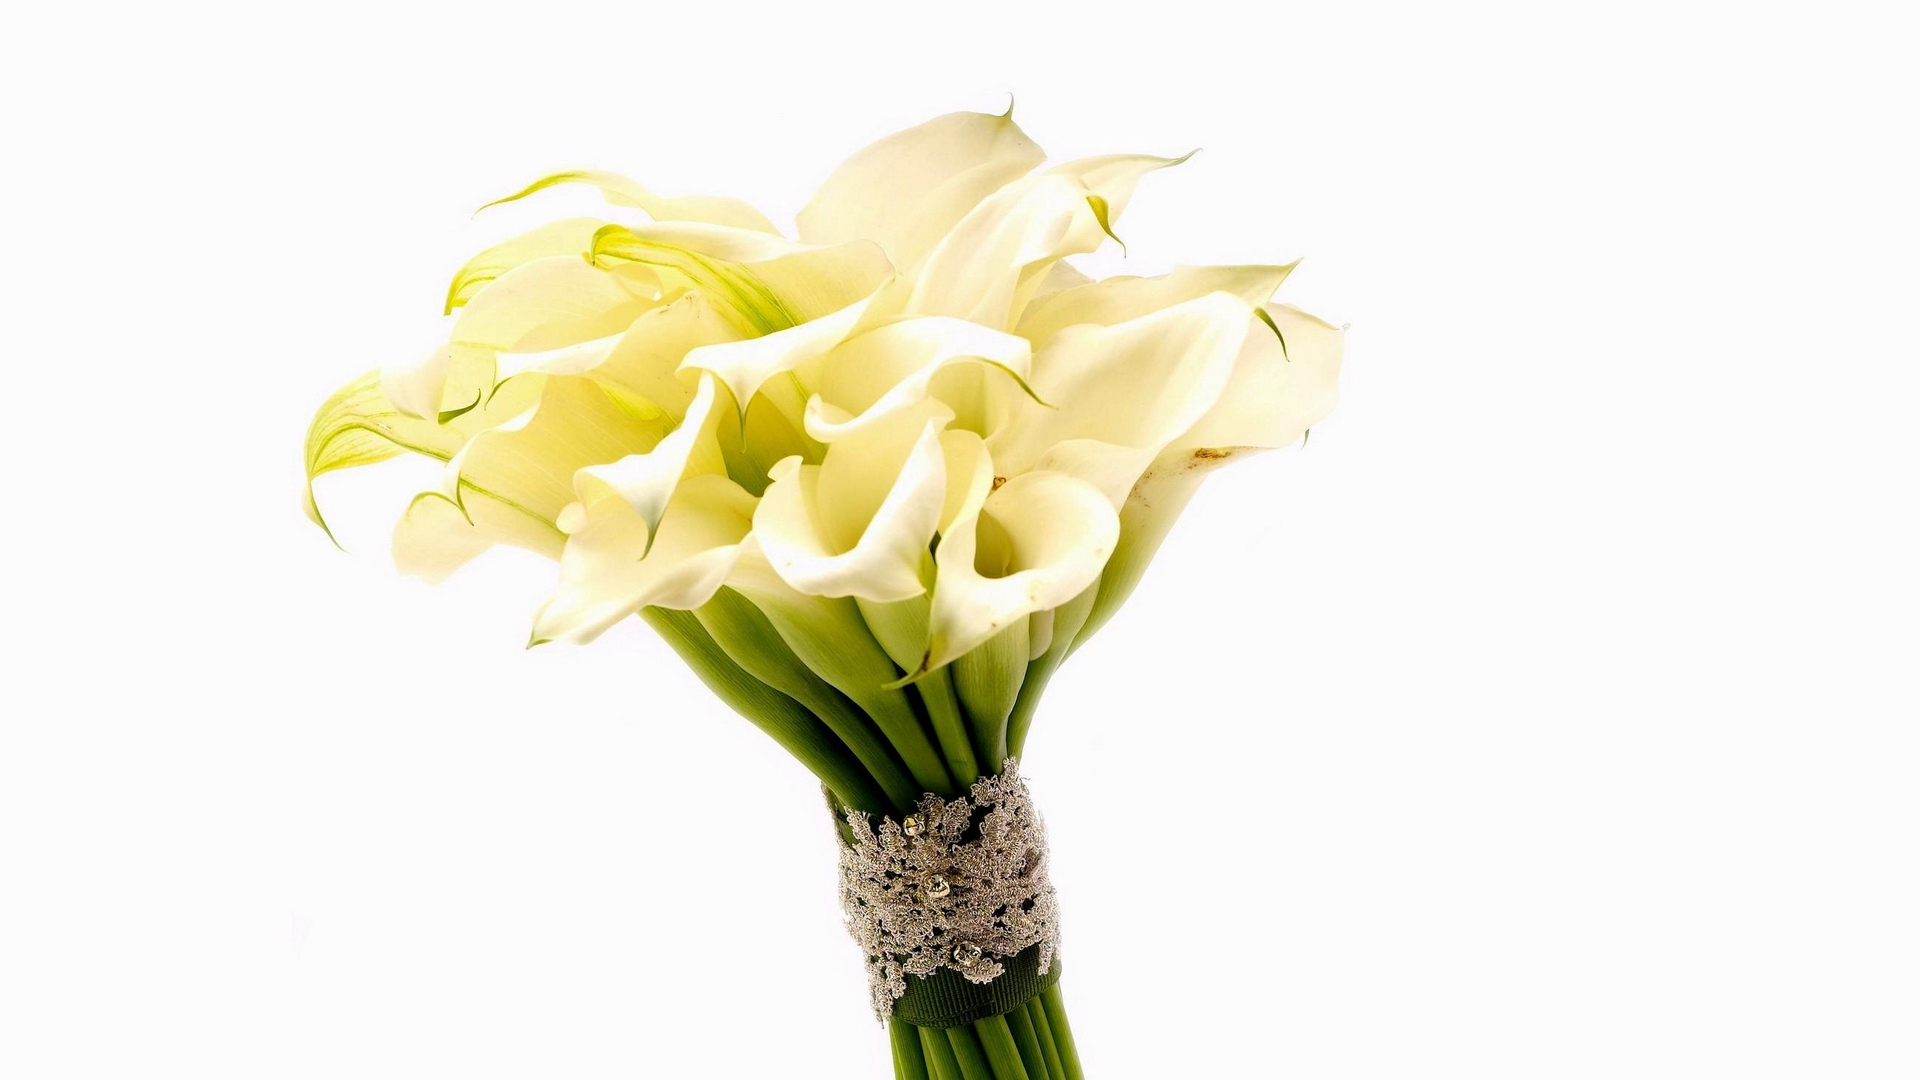 prime,lilies,blossom,arum lily,efflorescence,bouquet,of,calla,peak,flush,redolence,flowers,sweetness,lily